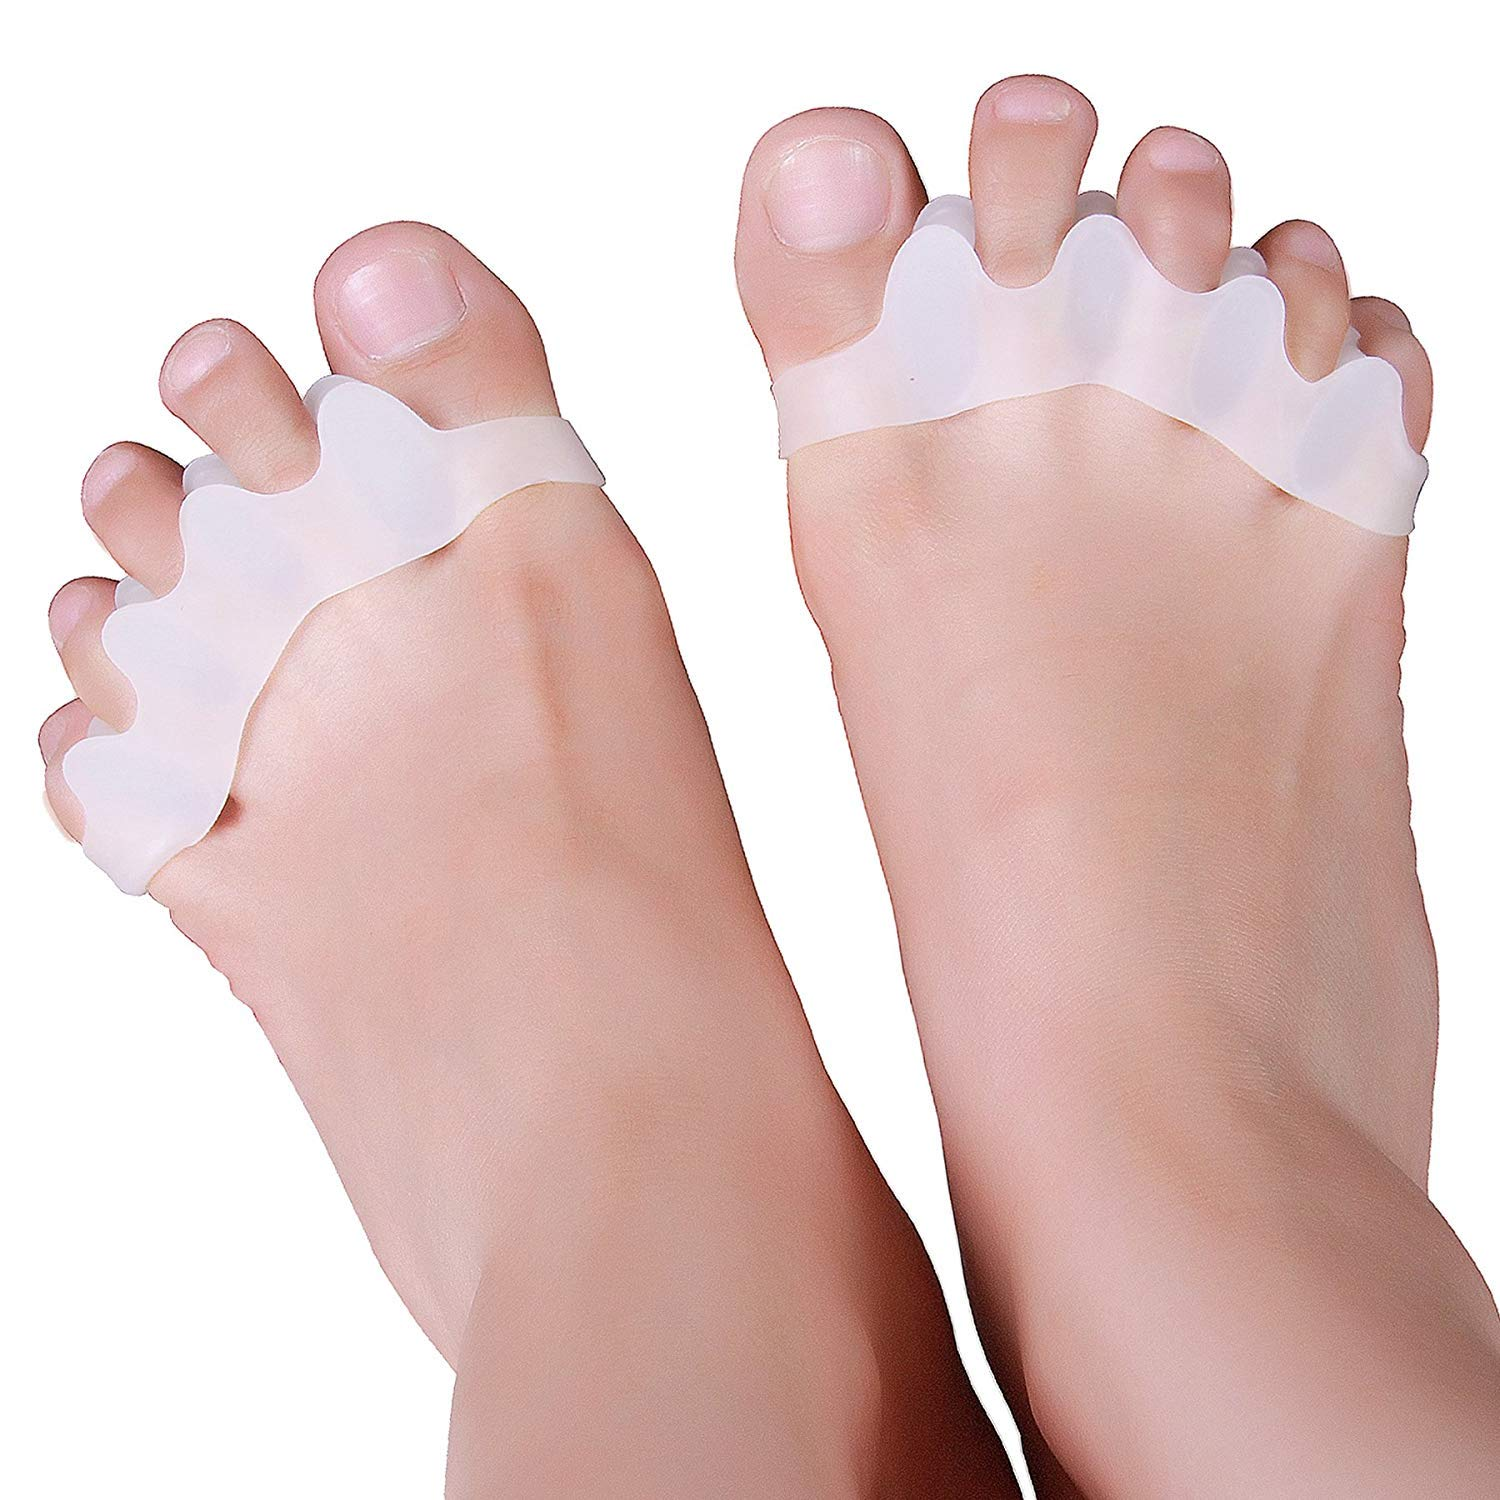 Bunion Corrector Pad Gel Toe Separators Hammer Hallux Valgus Correction 1pair Silicone Foot Fingers Separator Thumb Protect Toes Stretchers Bunions Relief For Hammertoe Overlapping Big Straightener